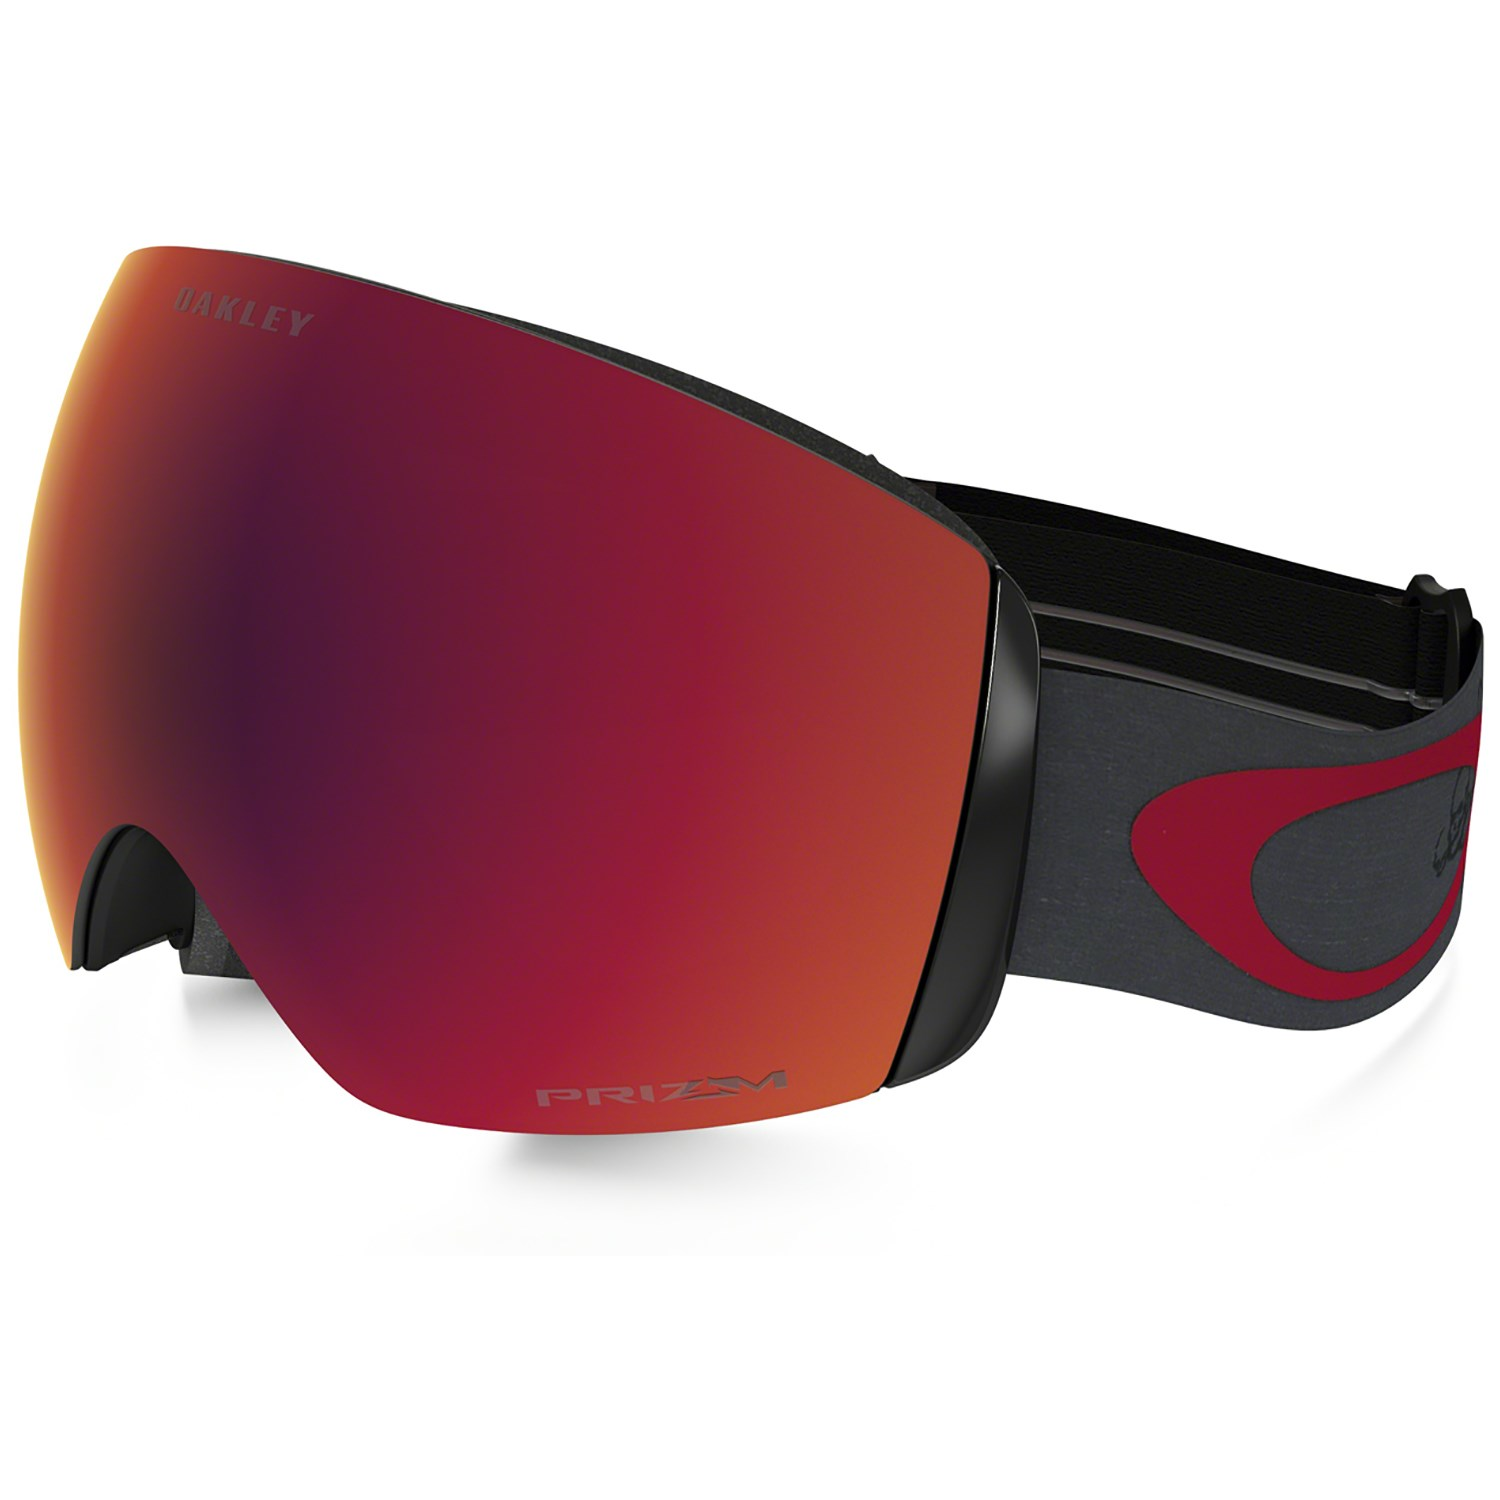 oakley goggles on sale  oakley flight deck seth morrison goggles $210.00 $159.99 sale